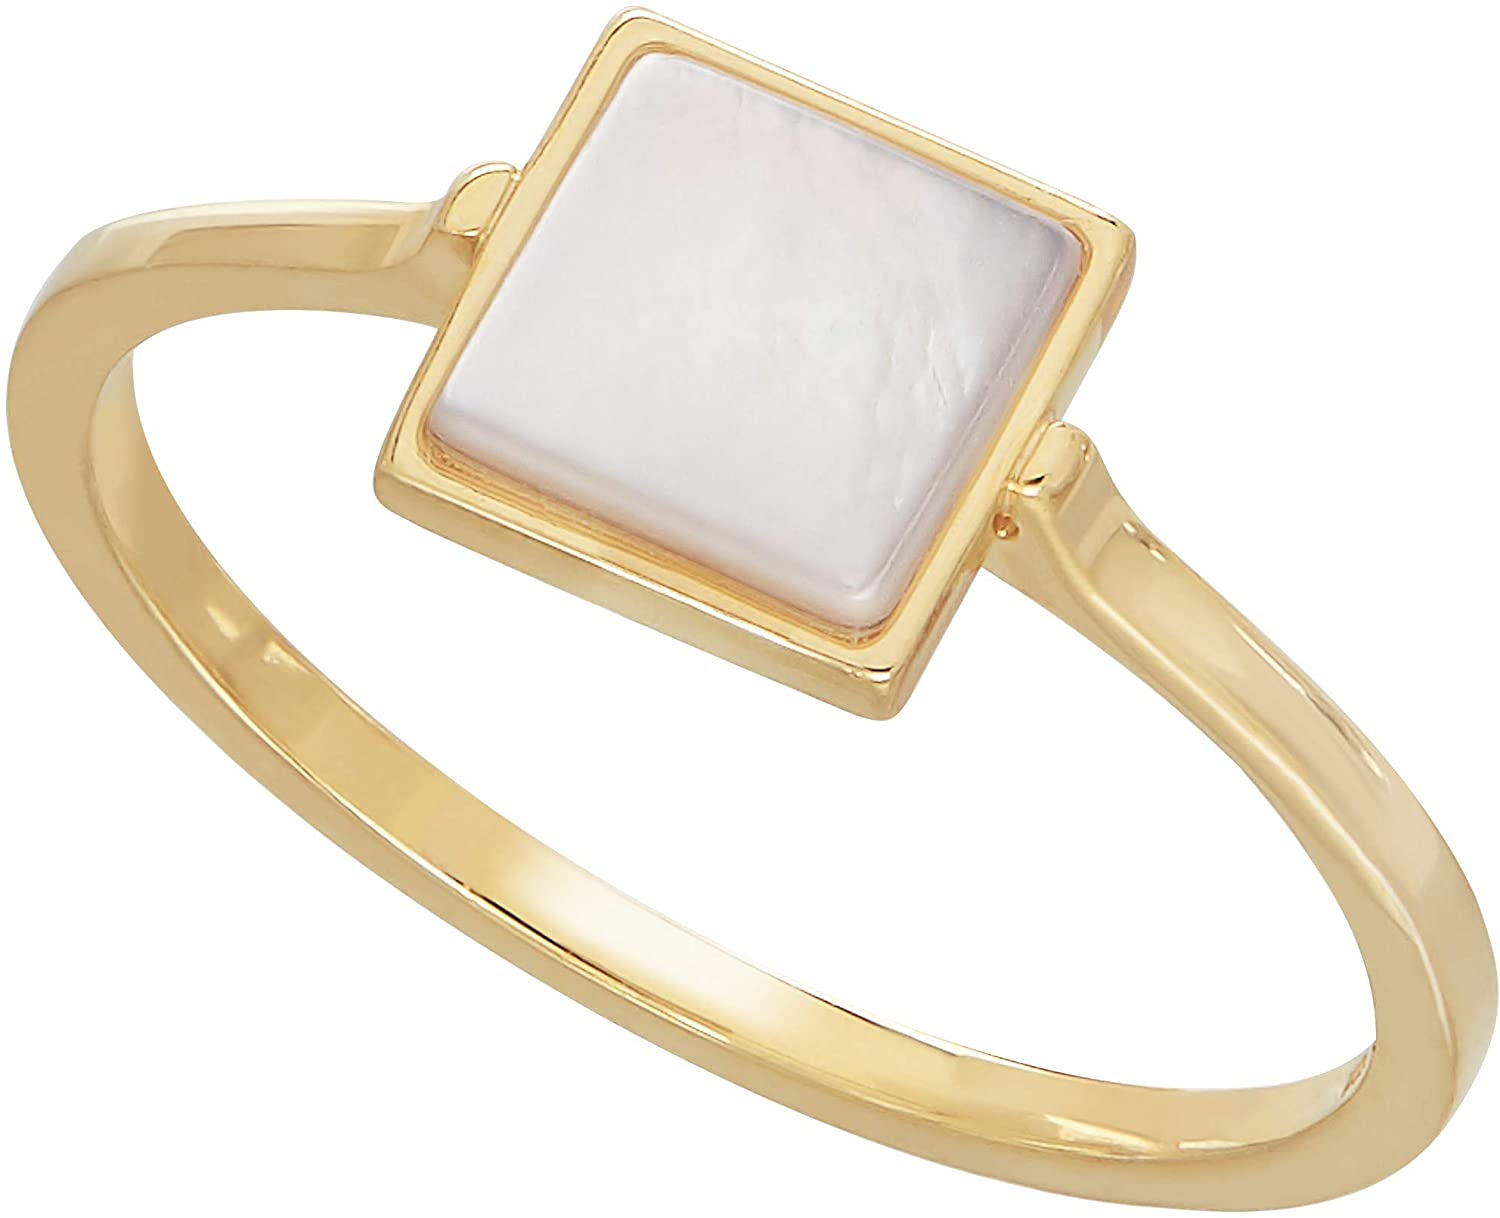 Honora Square Natural Mother-of-Pearl Solitaire Ring in 14K Gold